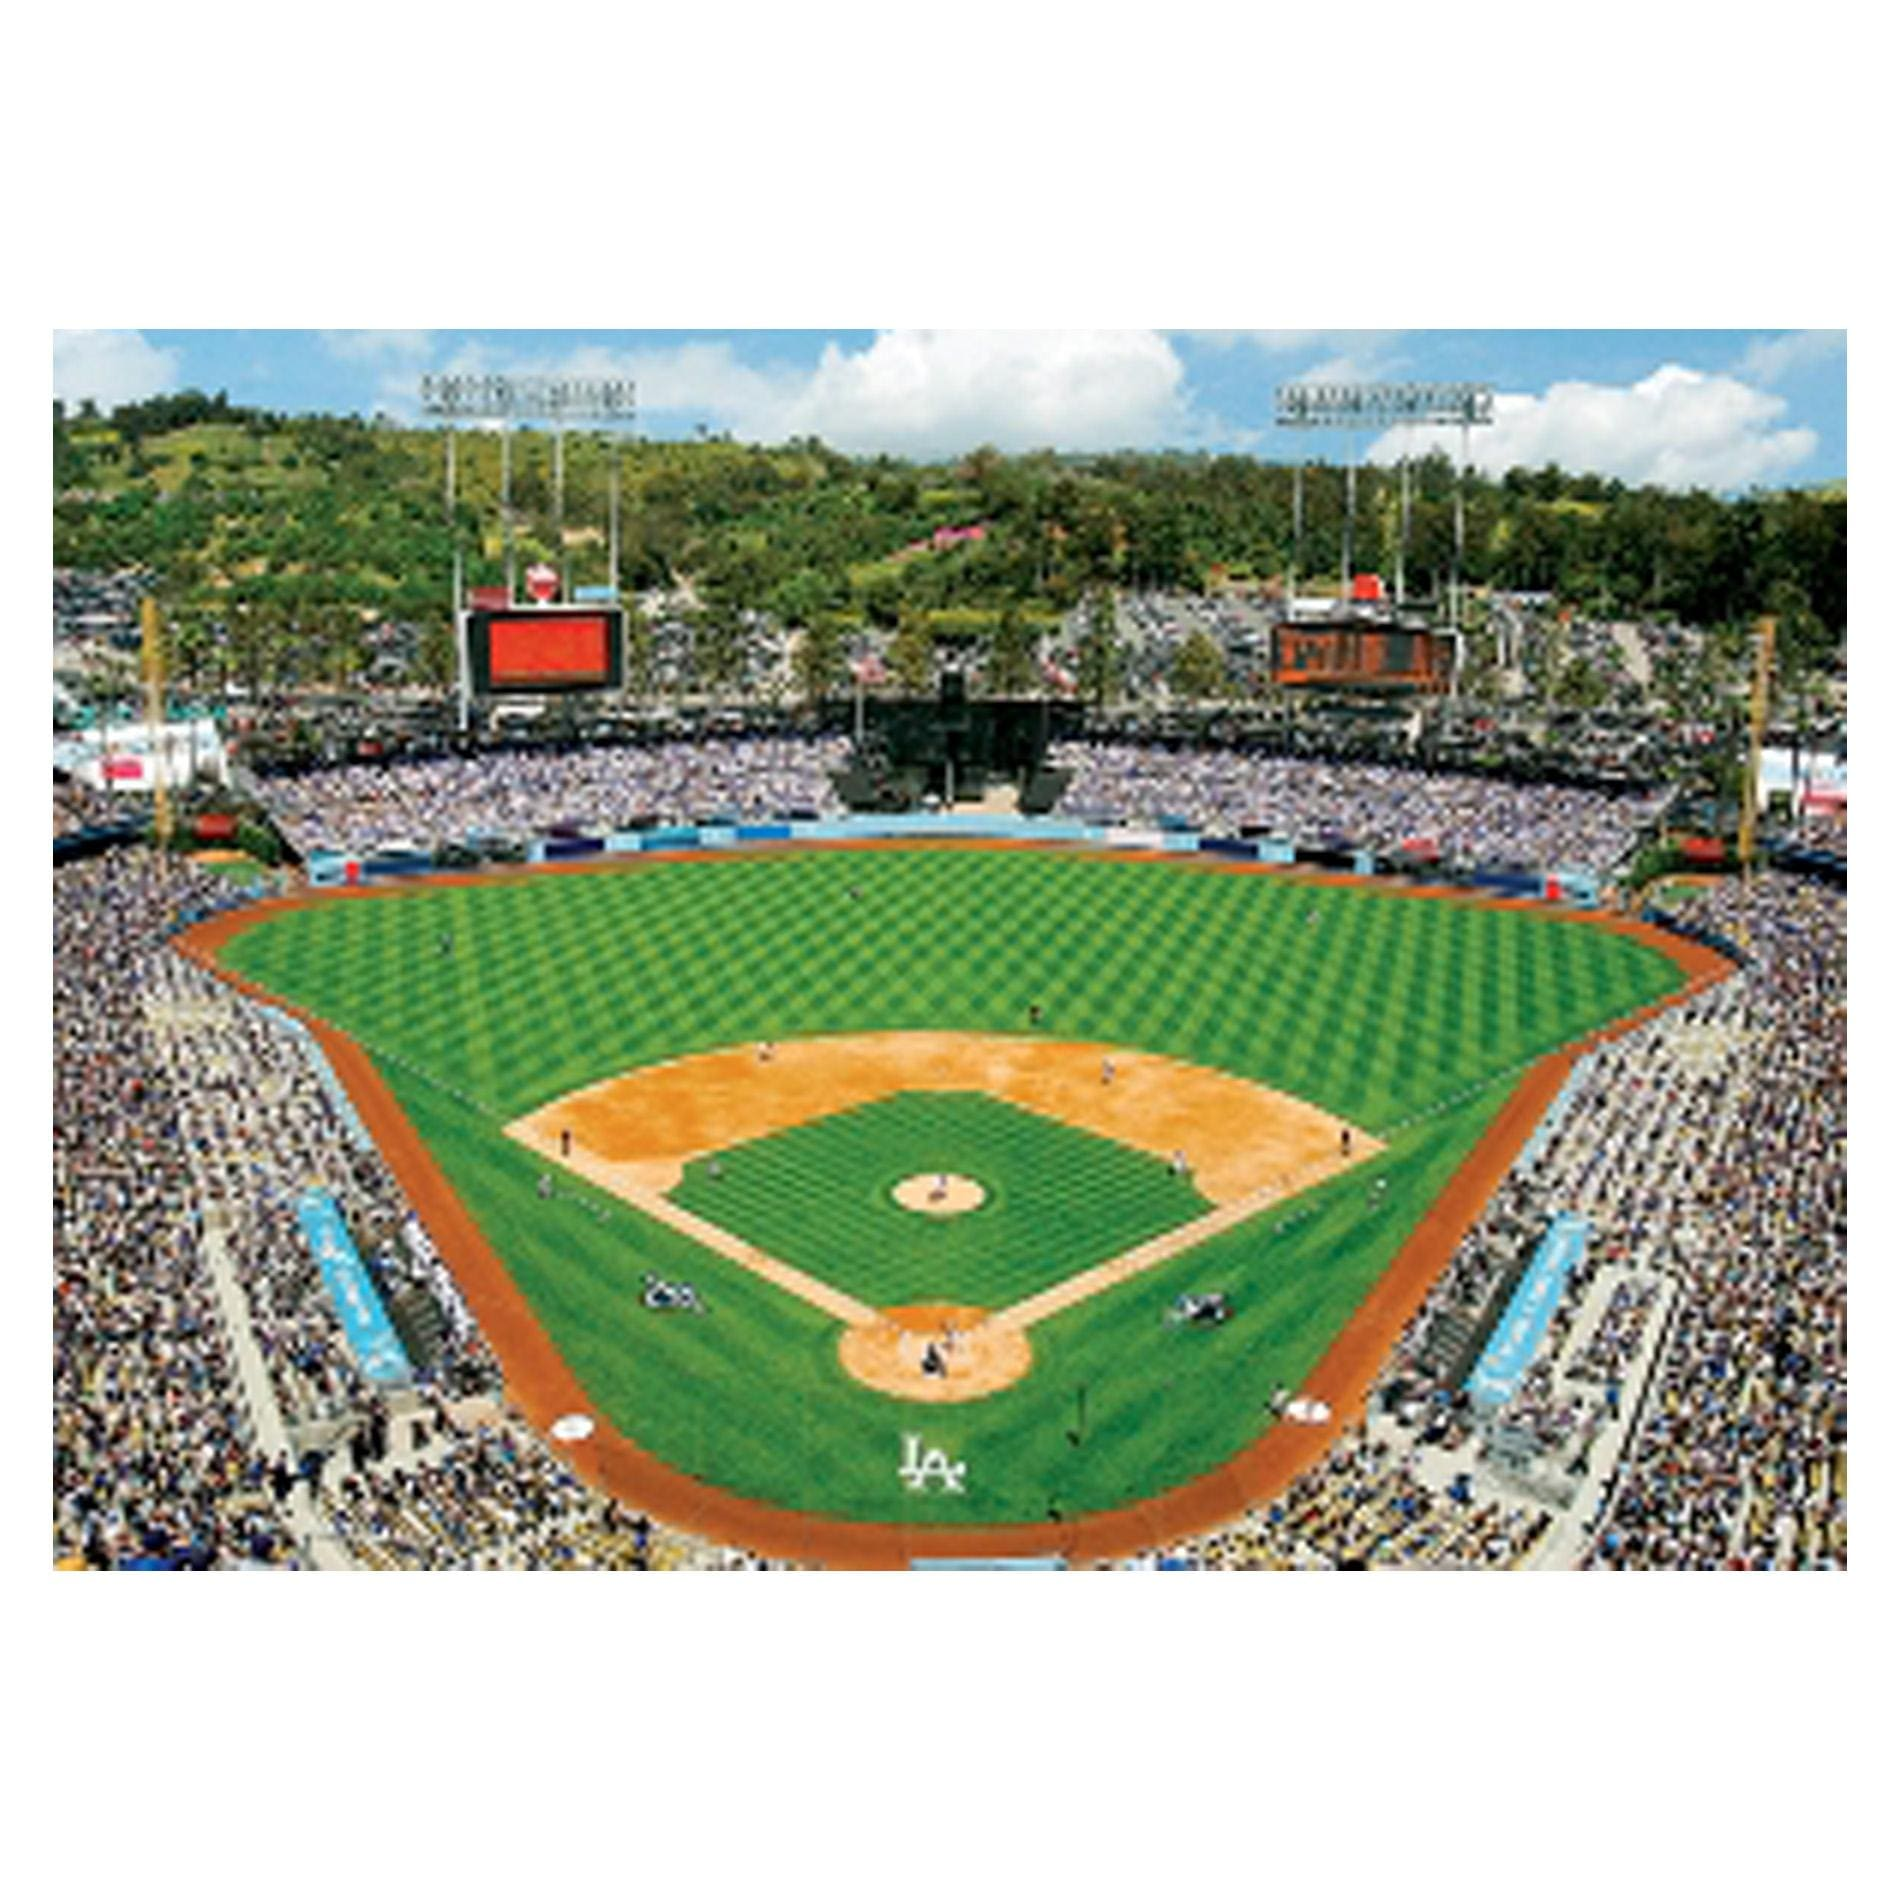 Los Angeles Dodgers MLB 500-piece Puzzle